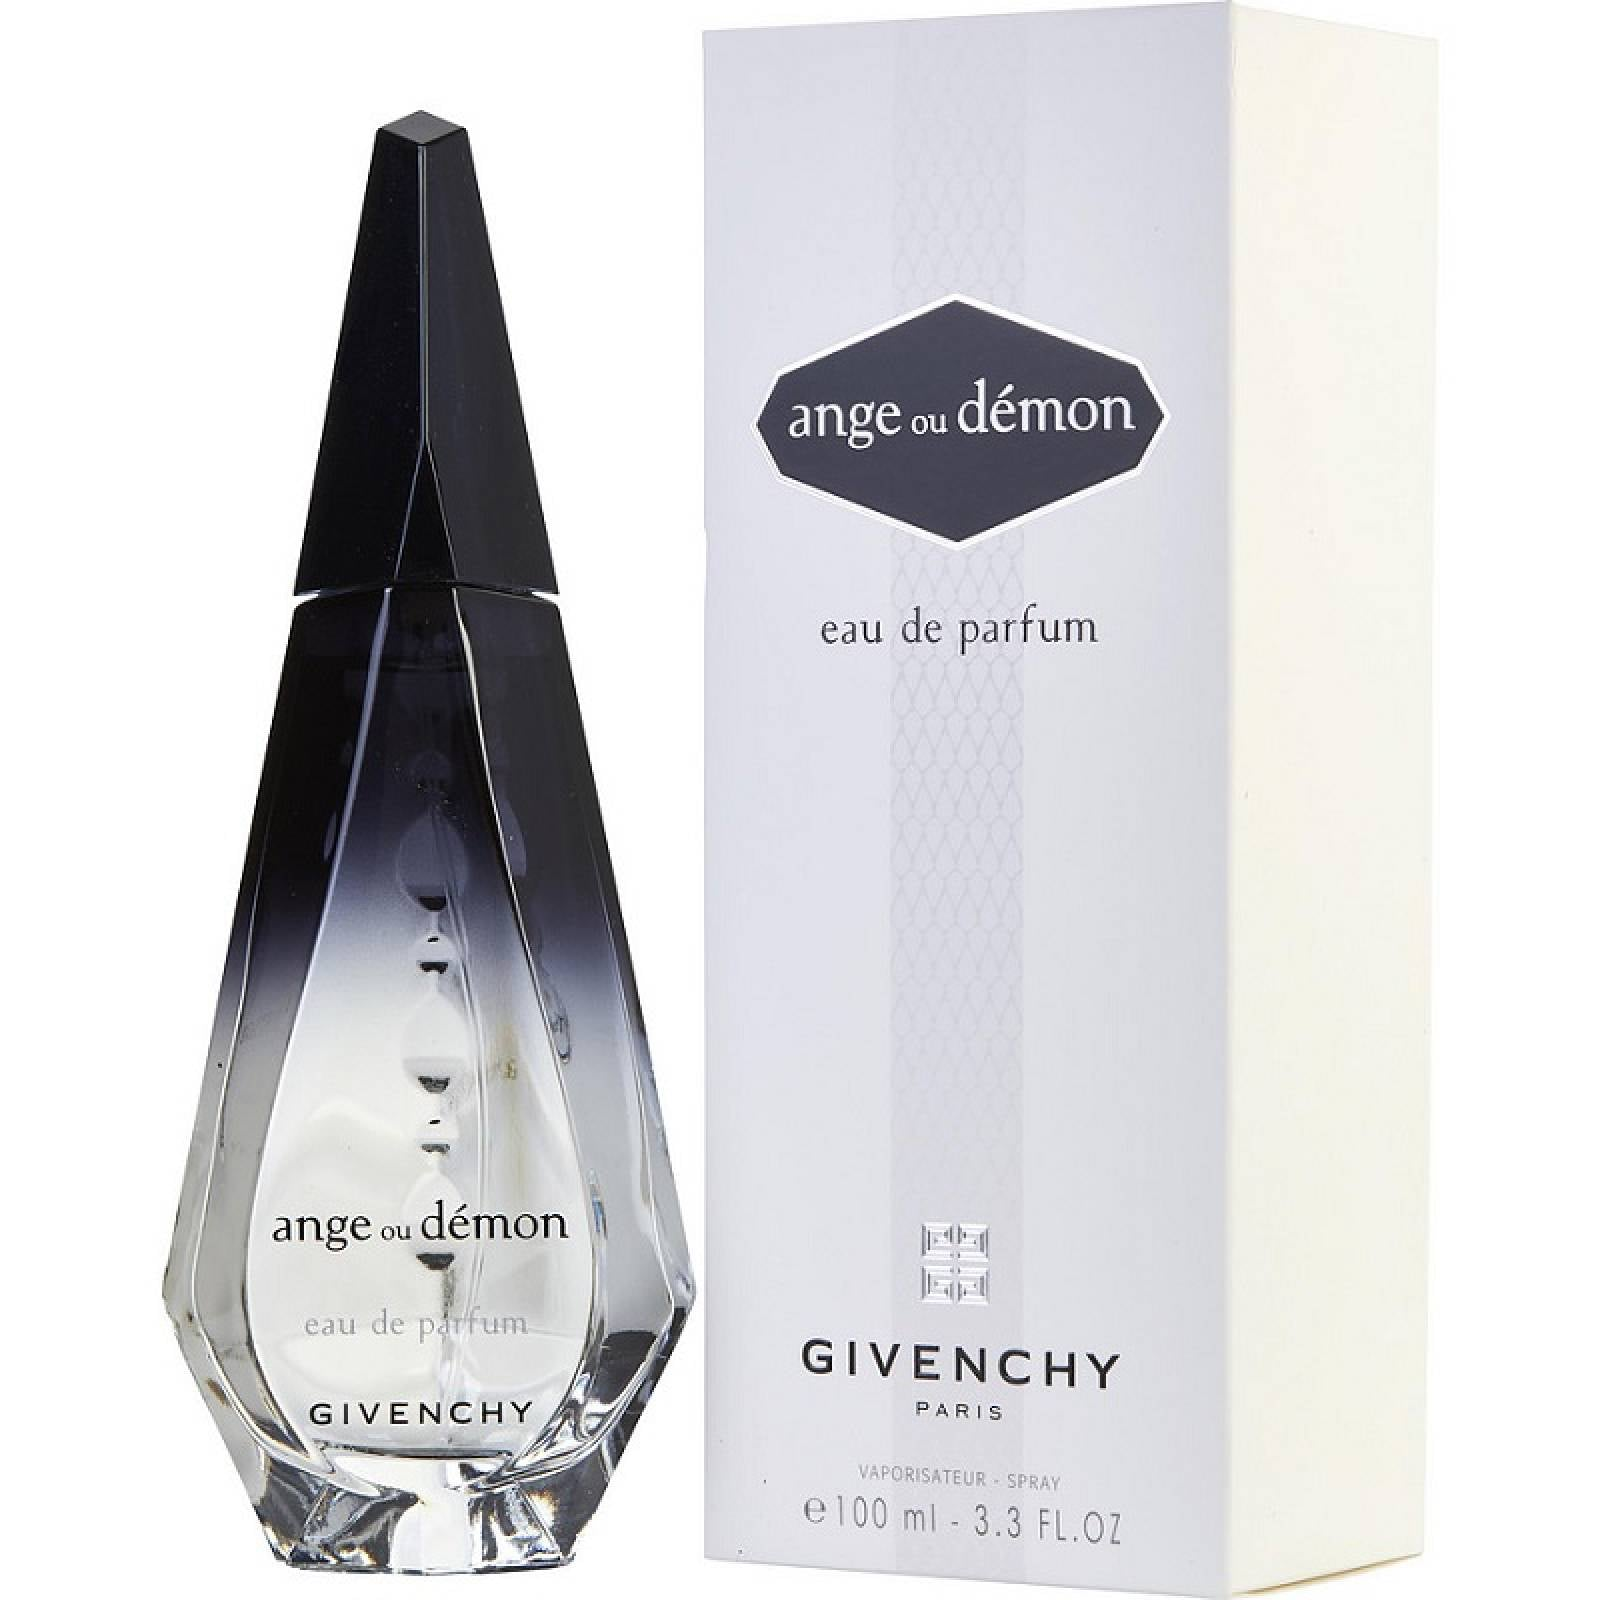 GIVENCHY  -  ANGE OU DEMON